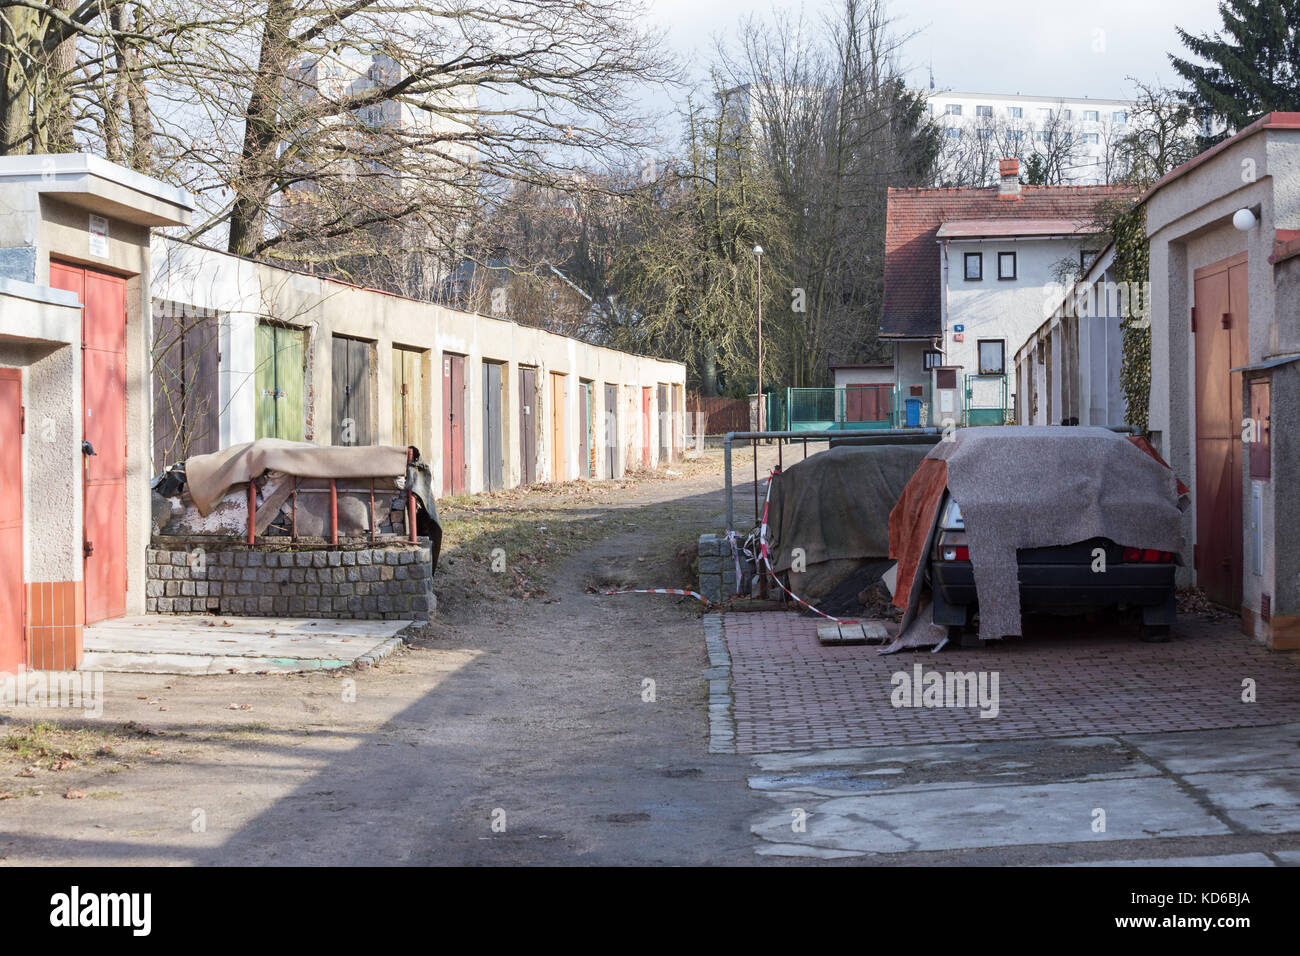 Great Garage Alley In A Poor District Of The Czech City Liberec In Europe